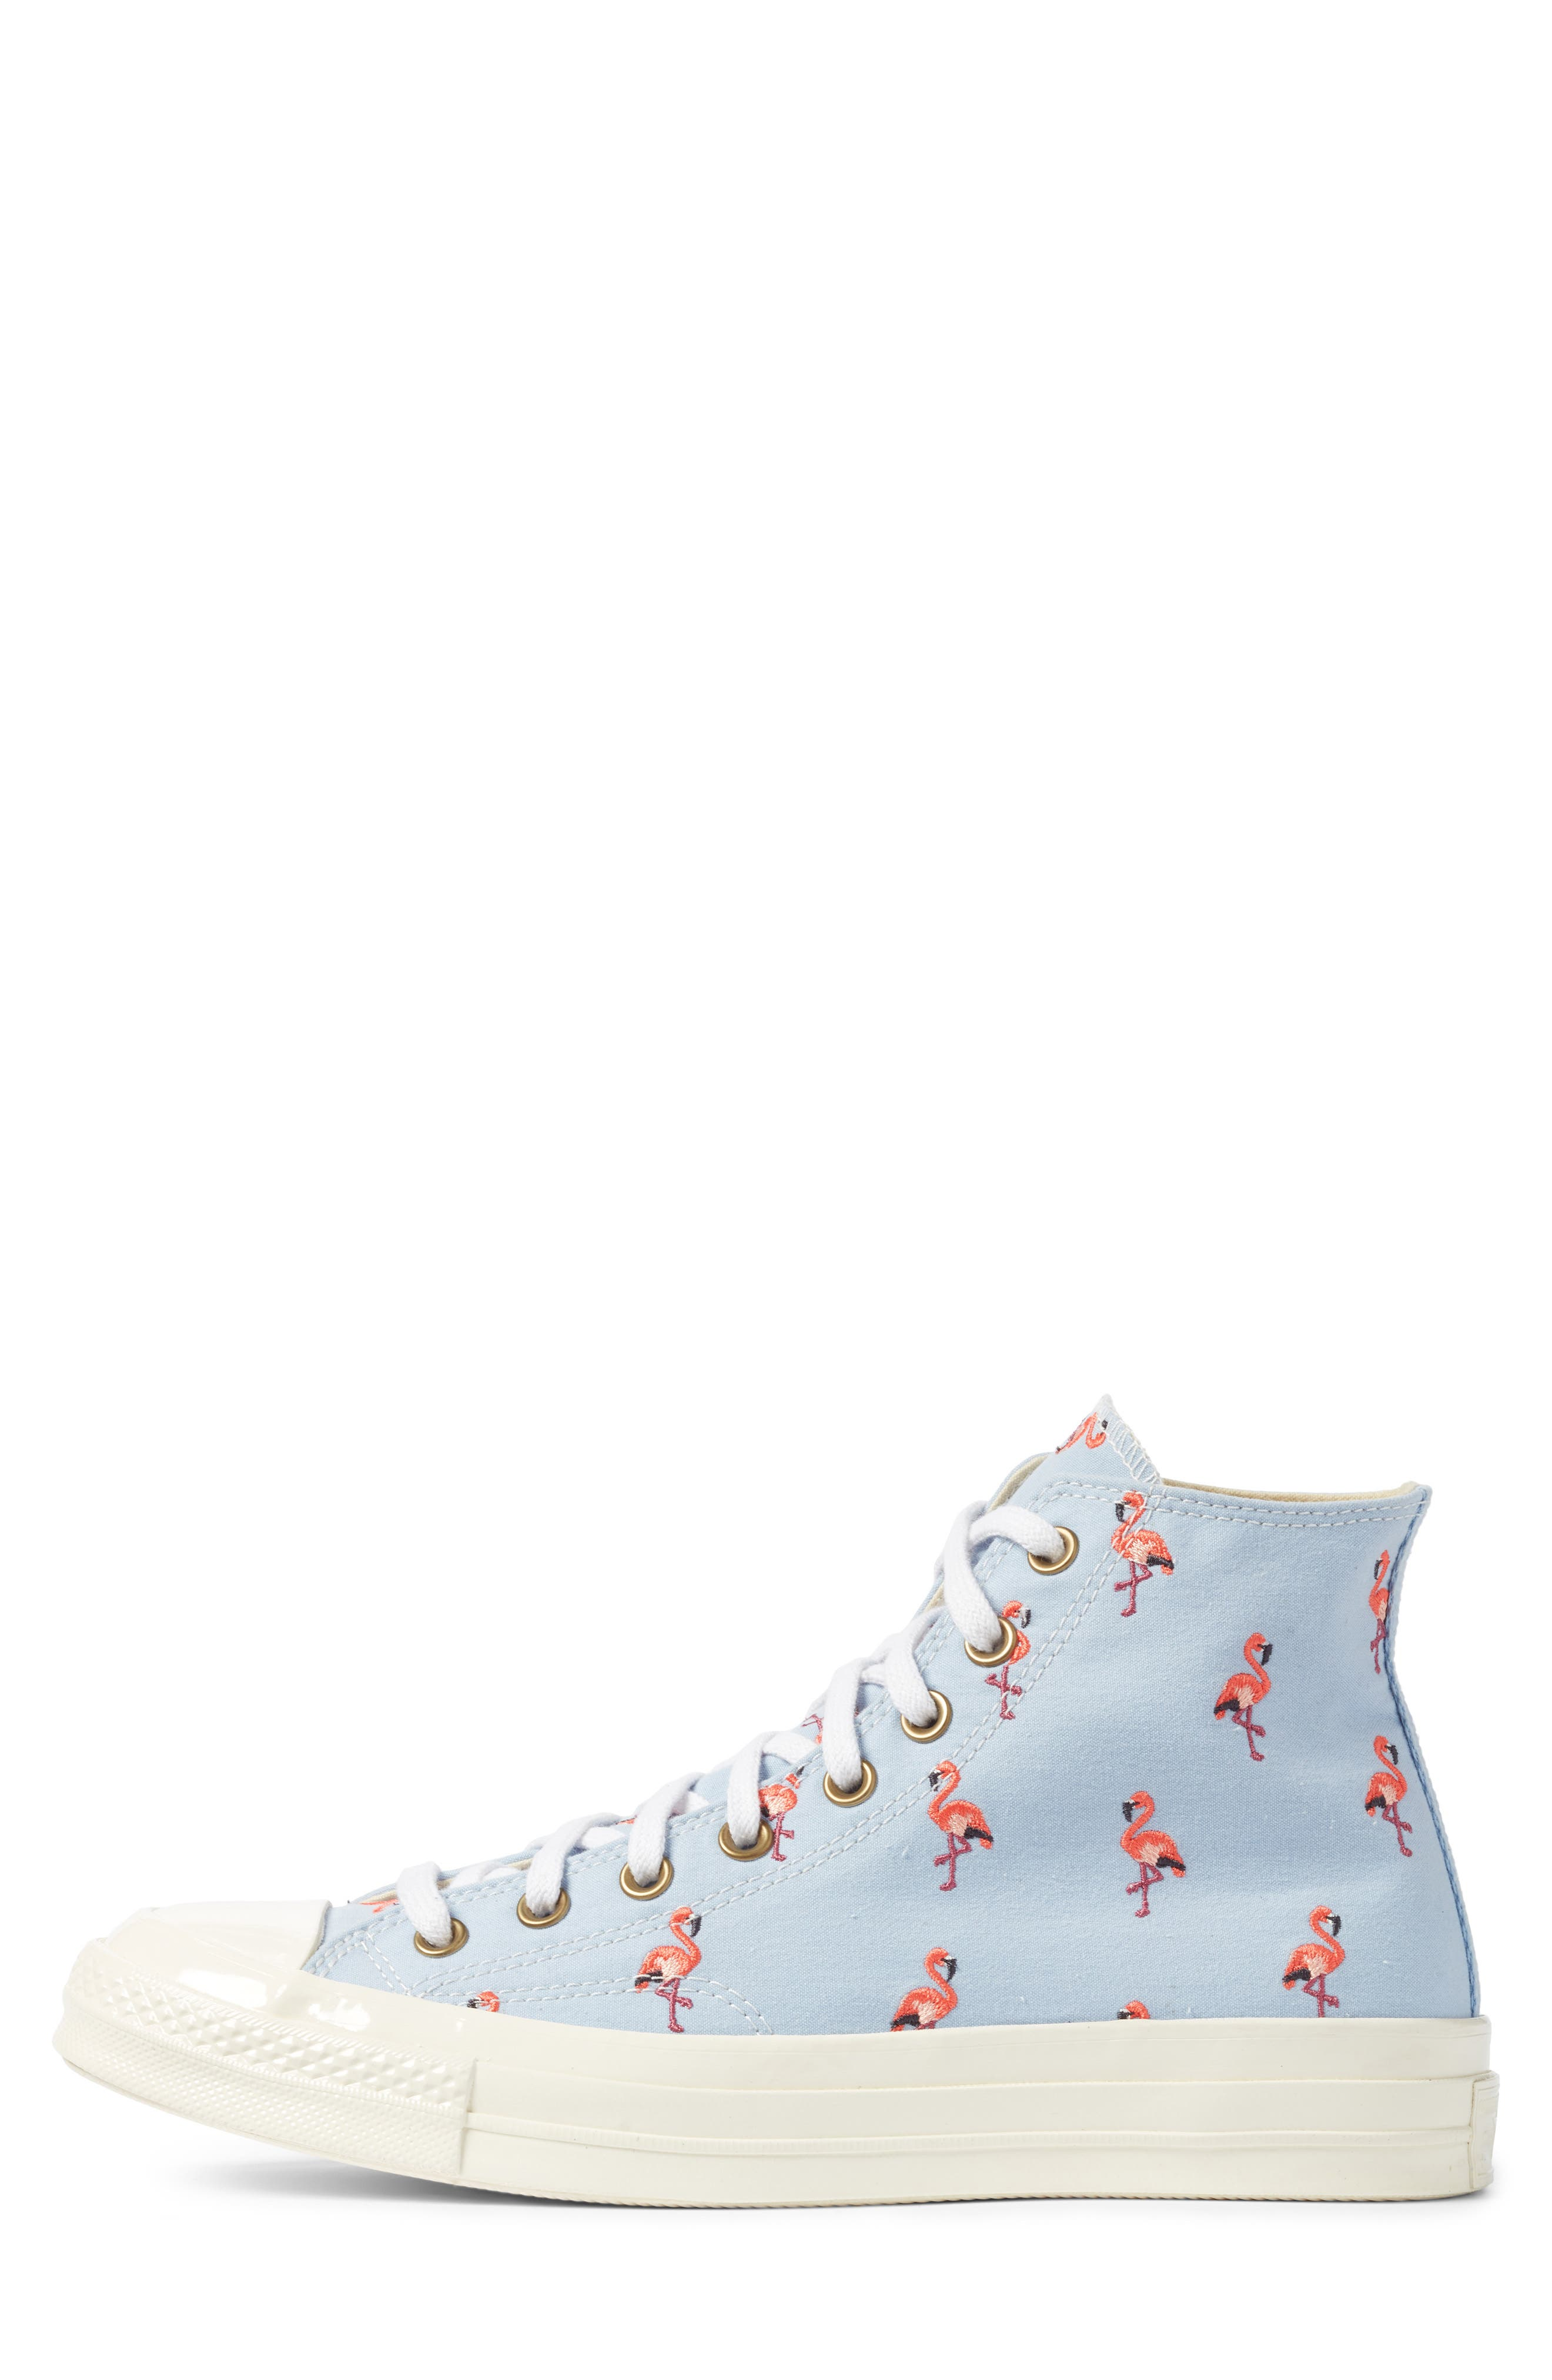 Chuck Taylor<sup>®</sup> All Star<sup>®</sup> Chuck 70 Flamingo Sneaker,                             Alternate thumbnail 3, color,                             Blue Chili